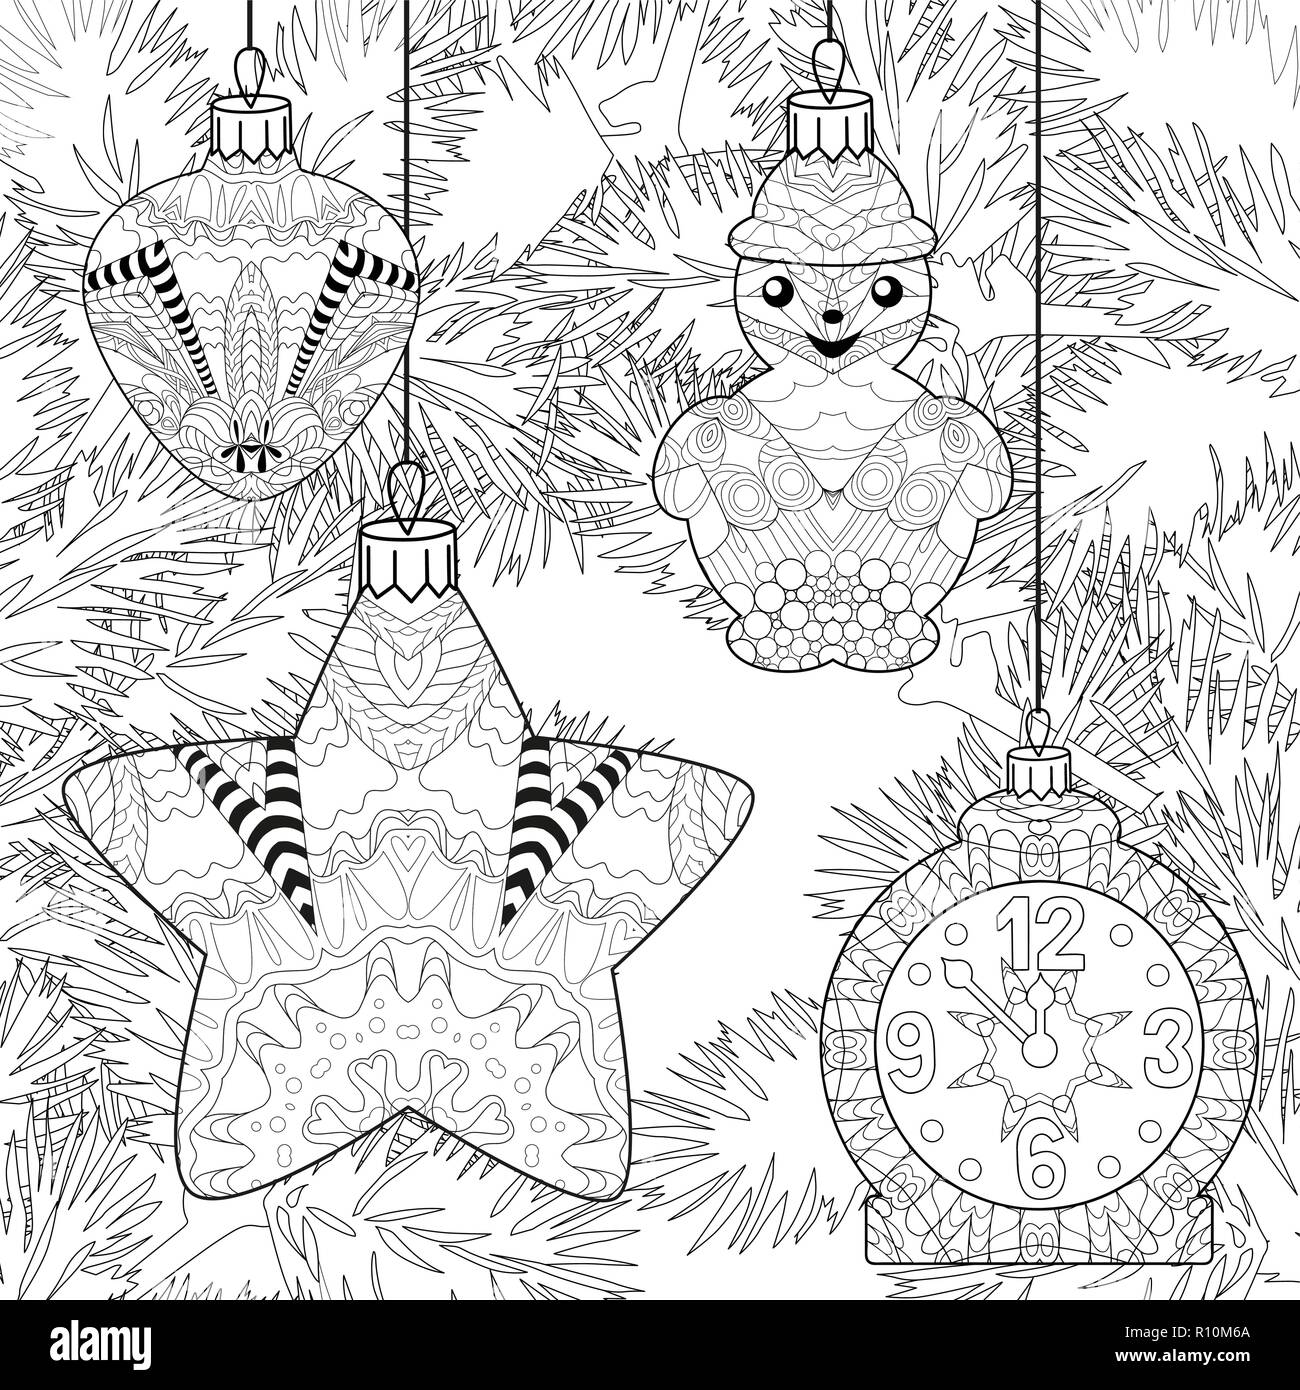 Zentangle stylized Christmas decorations with spruce branches. Hand Drawn lace vector illustration - Stock Vector